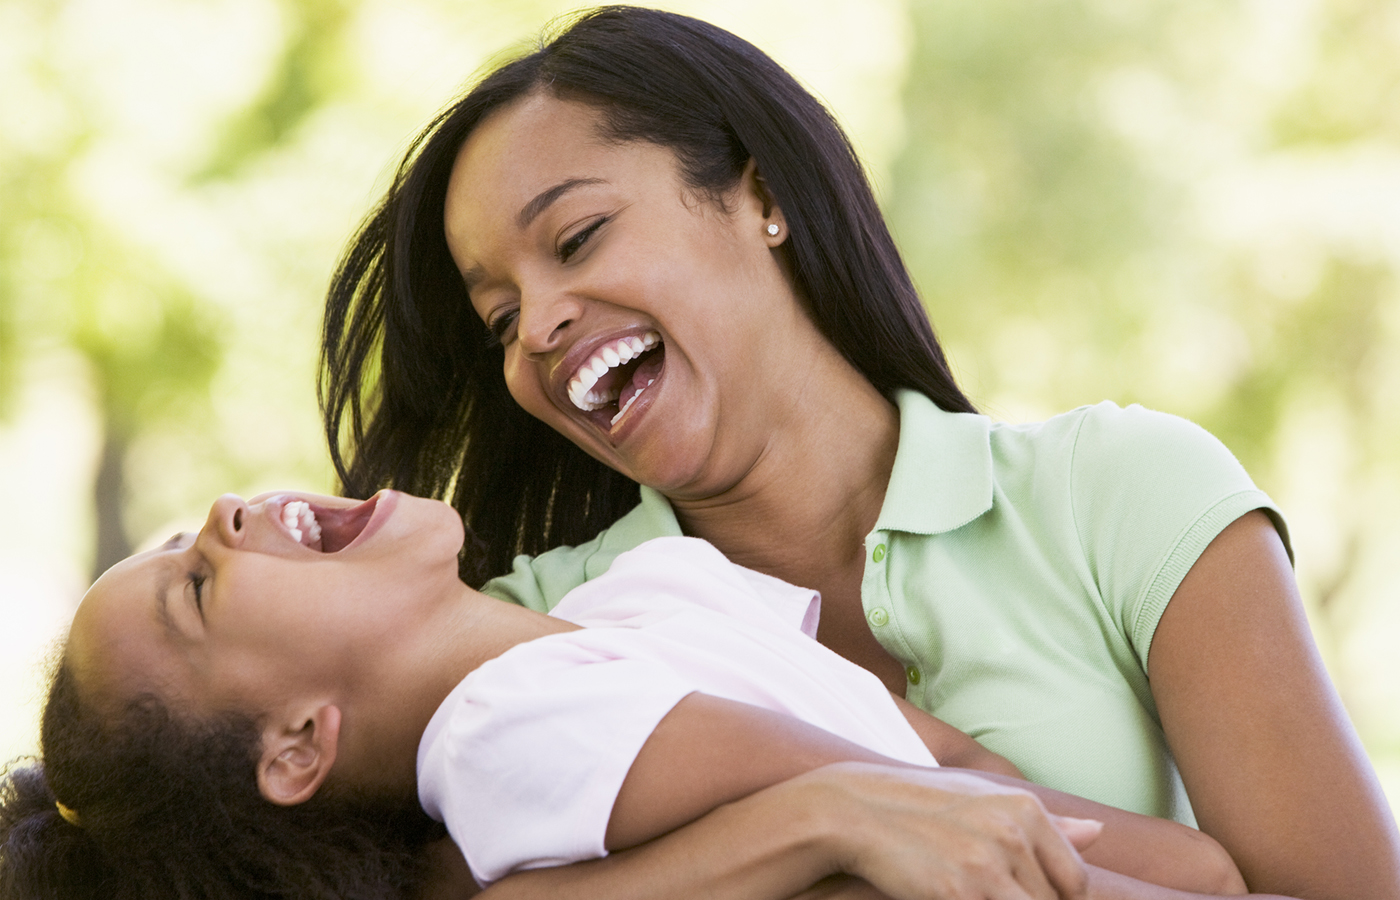 Mothering: Laugh More, Stress Less, Feel Better